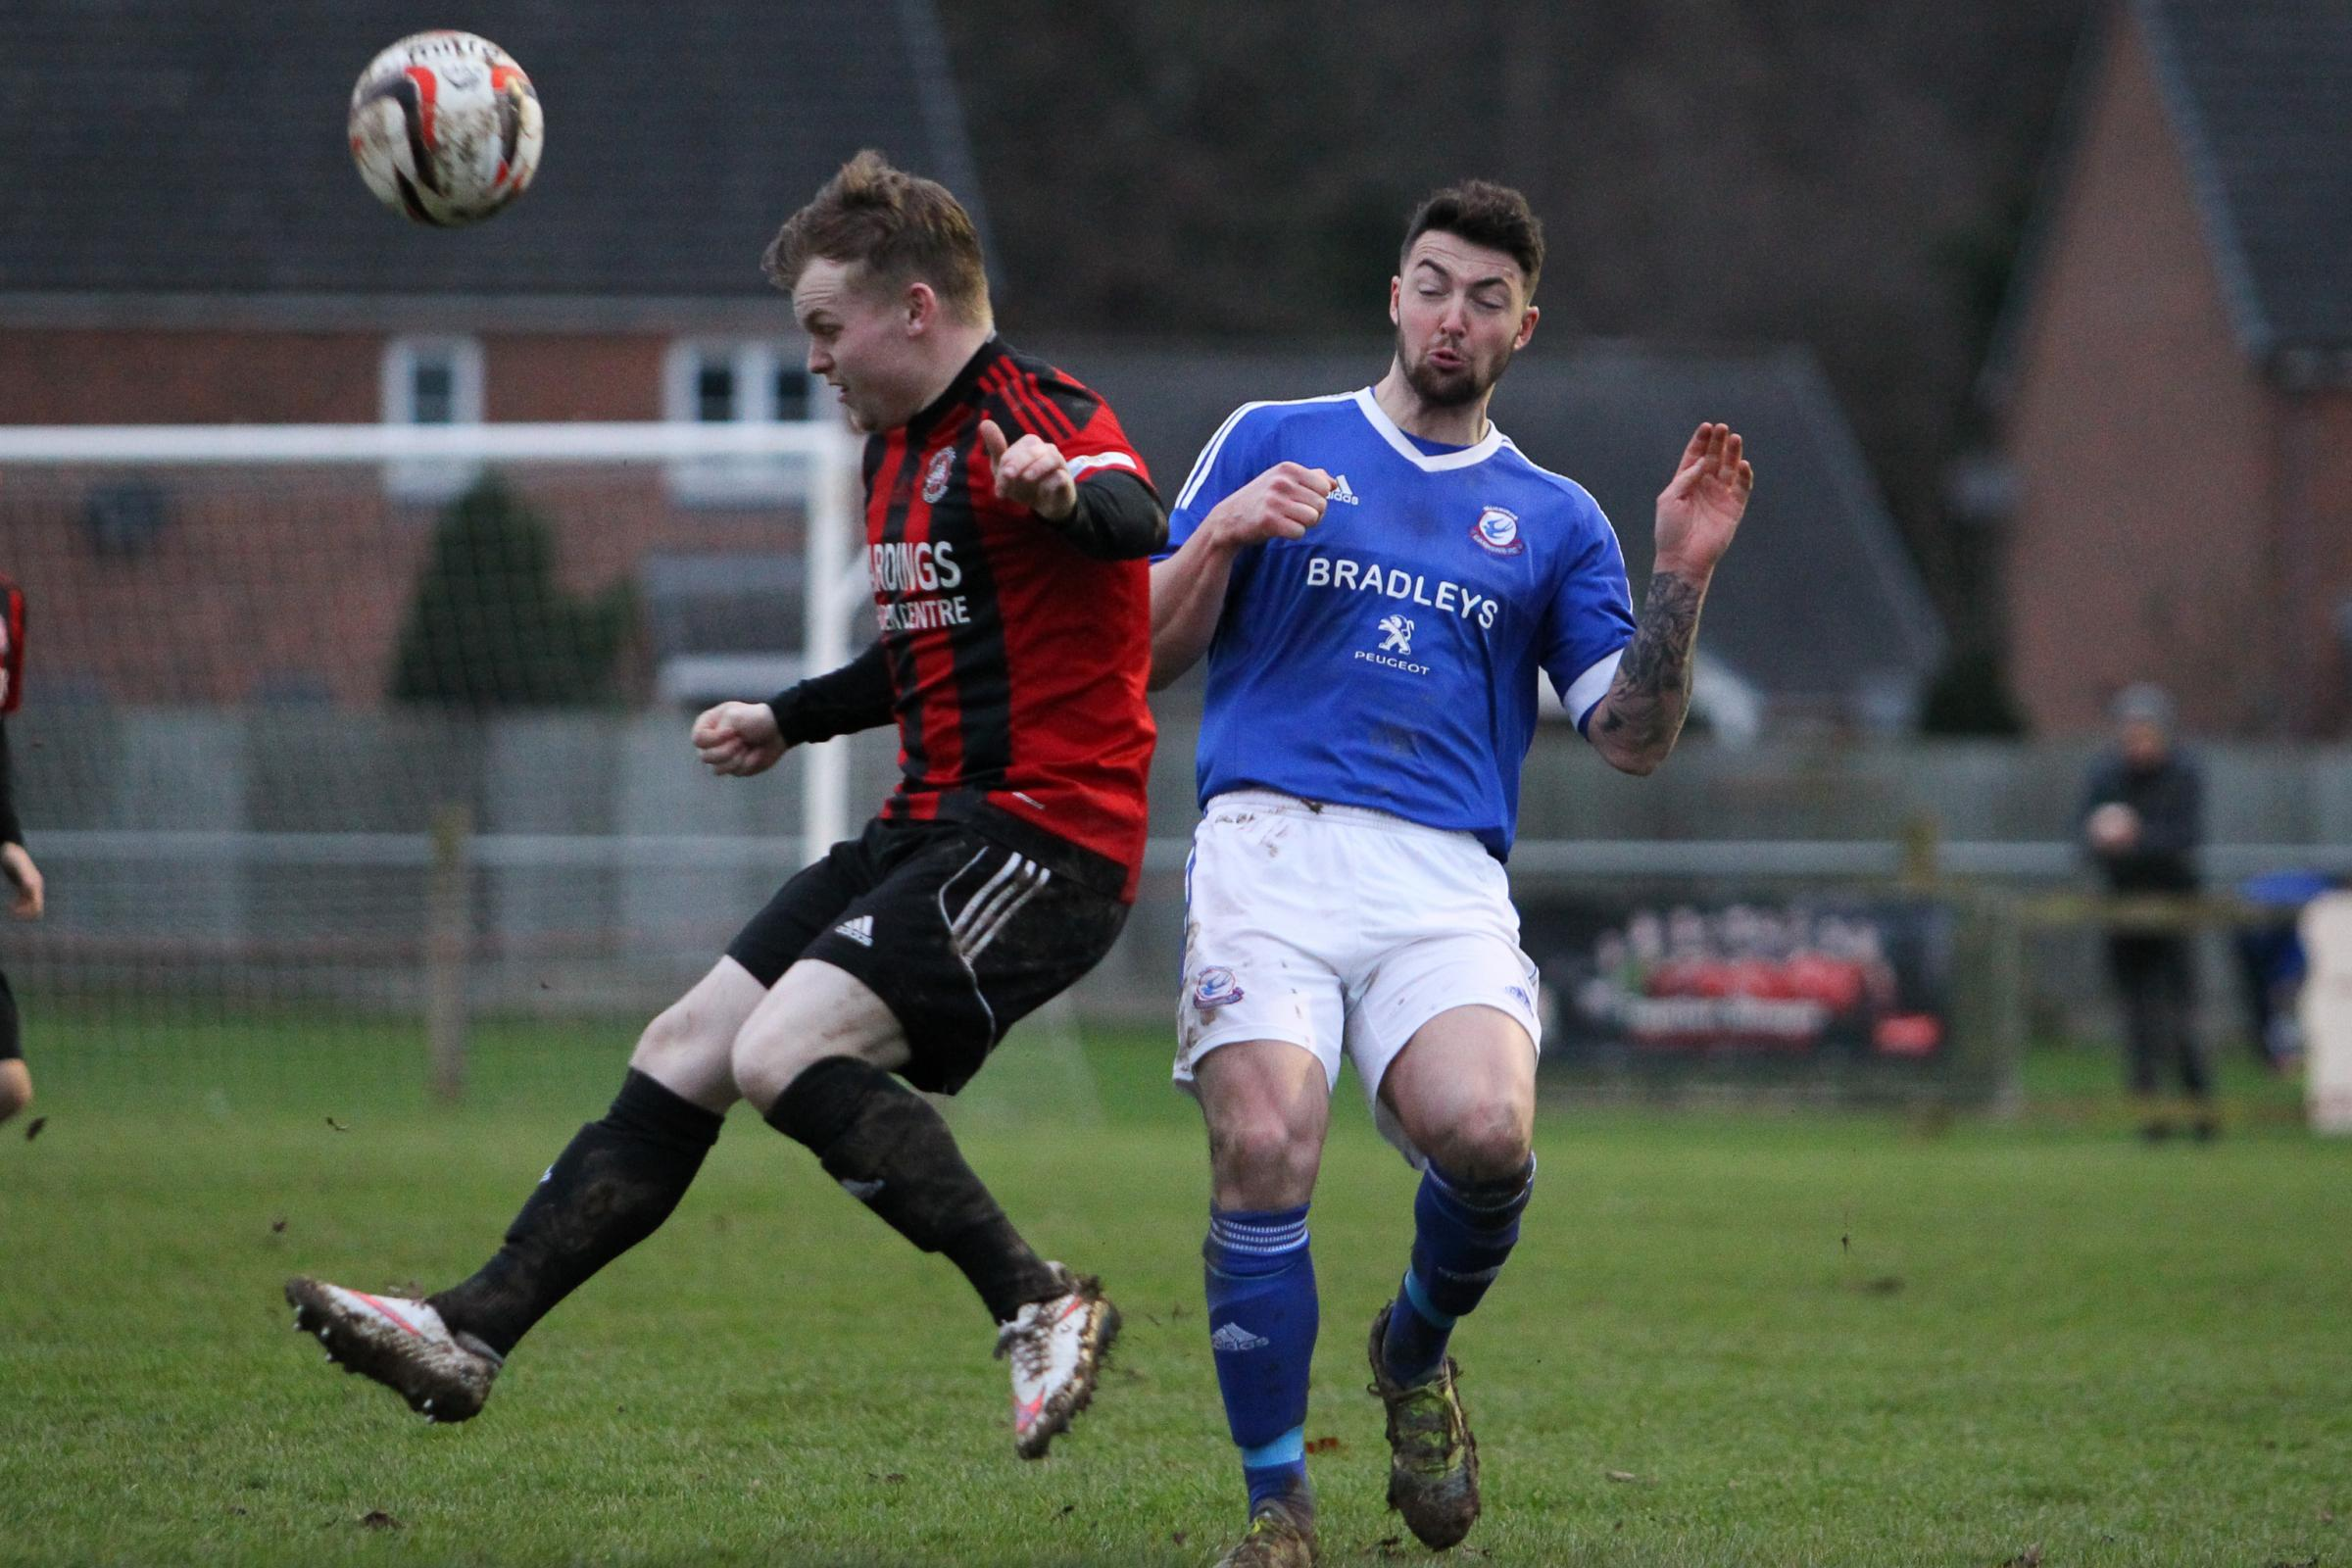 Guilsfield's Louis Irvine ha signed for J D Welsh Premier strugglers Prestatyn Town. Mike Sheridan/County Times. MS853-2017